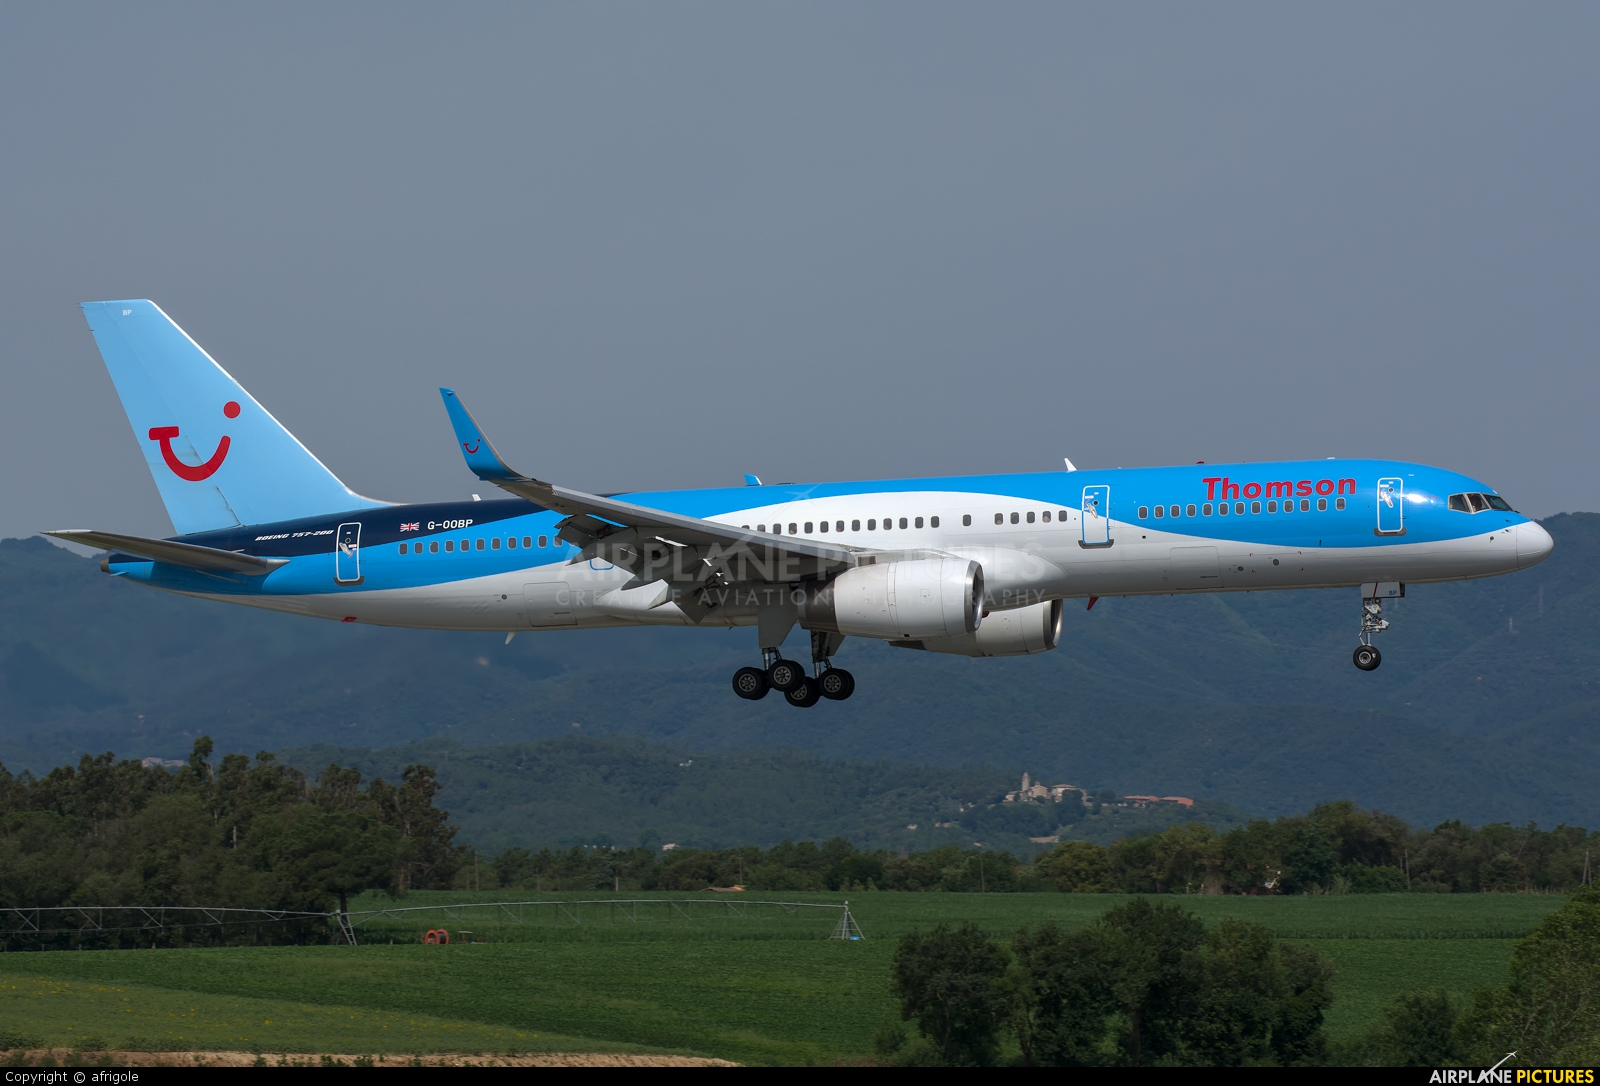 Thomson/Thomsonfly G-OOBP aircraft at Girona - Costa Brava